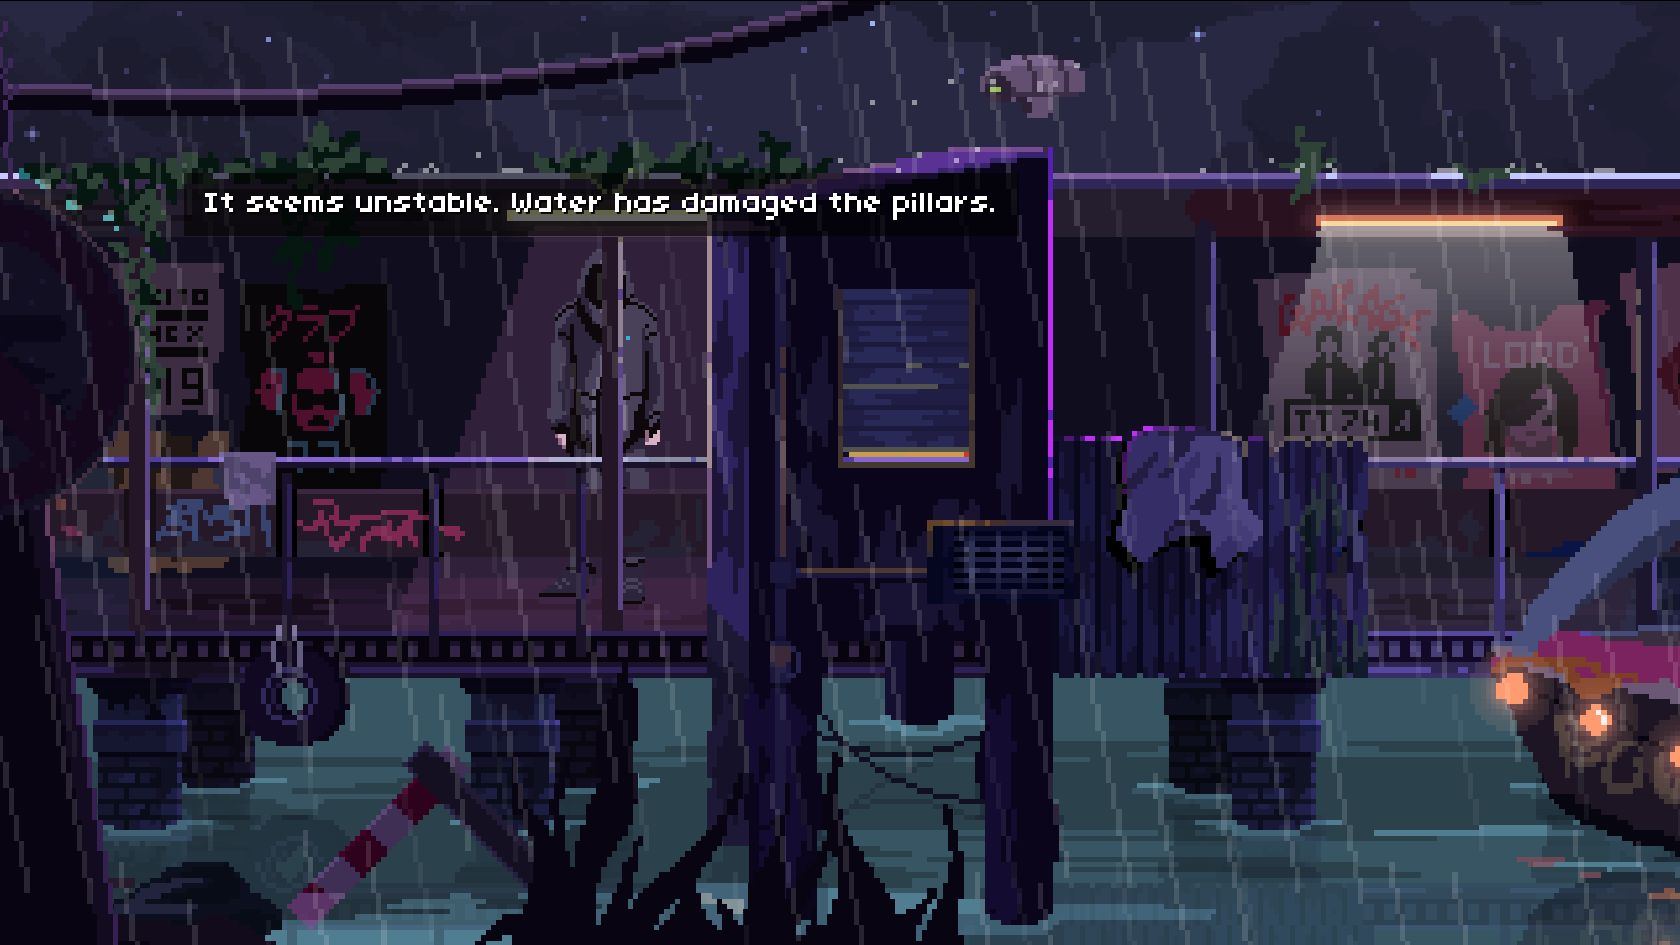 The player character in VirtuaVerse stands on a rainy, dilapidated dock at night. There are old posters and bits of graffiti on the wood. The character observes that Water has damaged the pillars and it seems unstable.